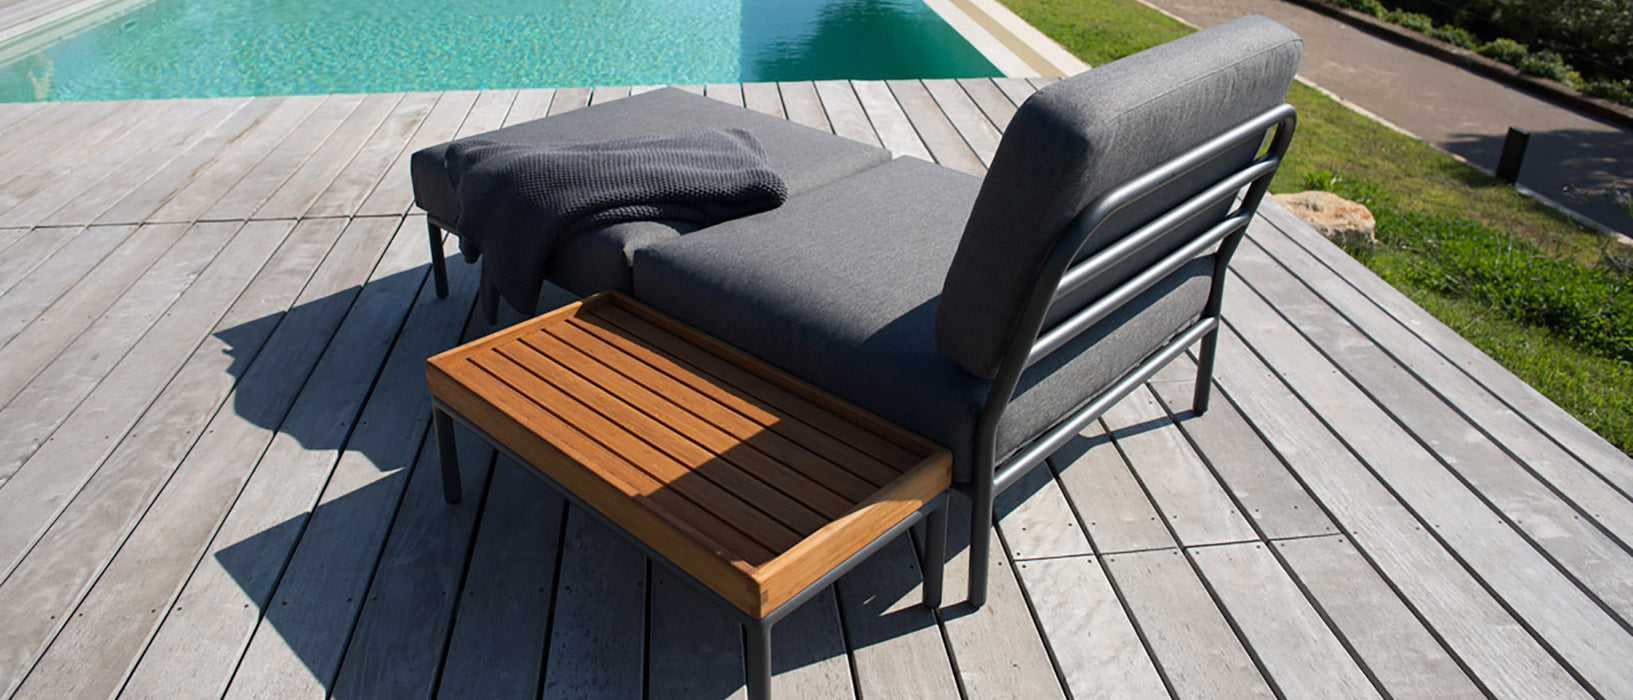 LEVEL Outdoor Lounge Side Table